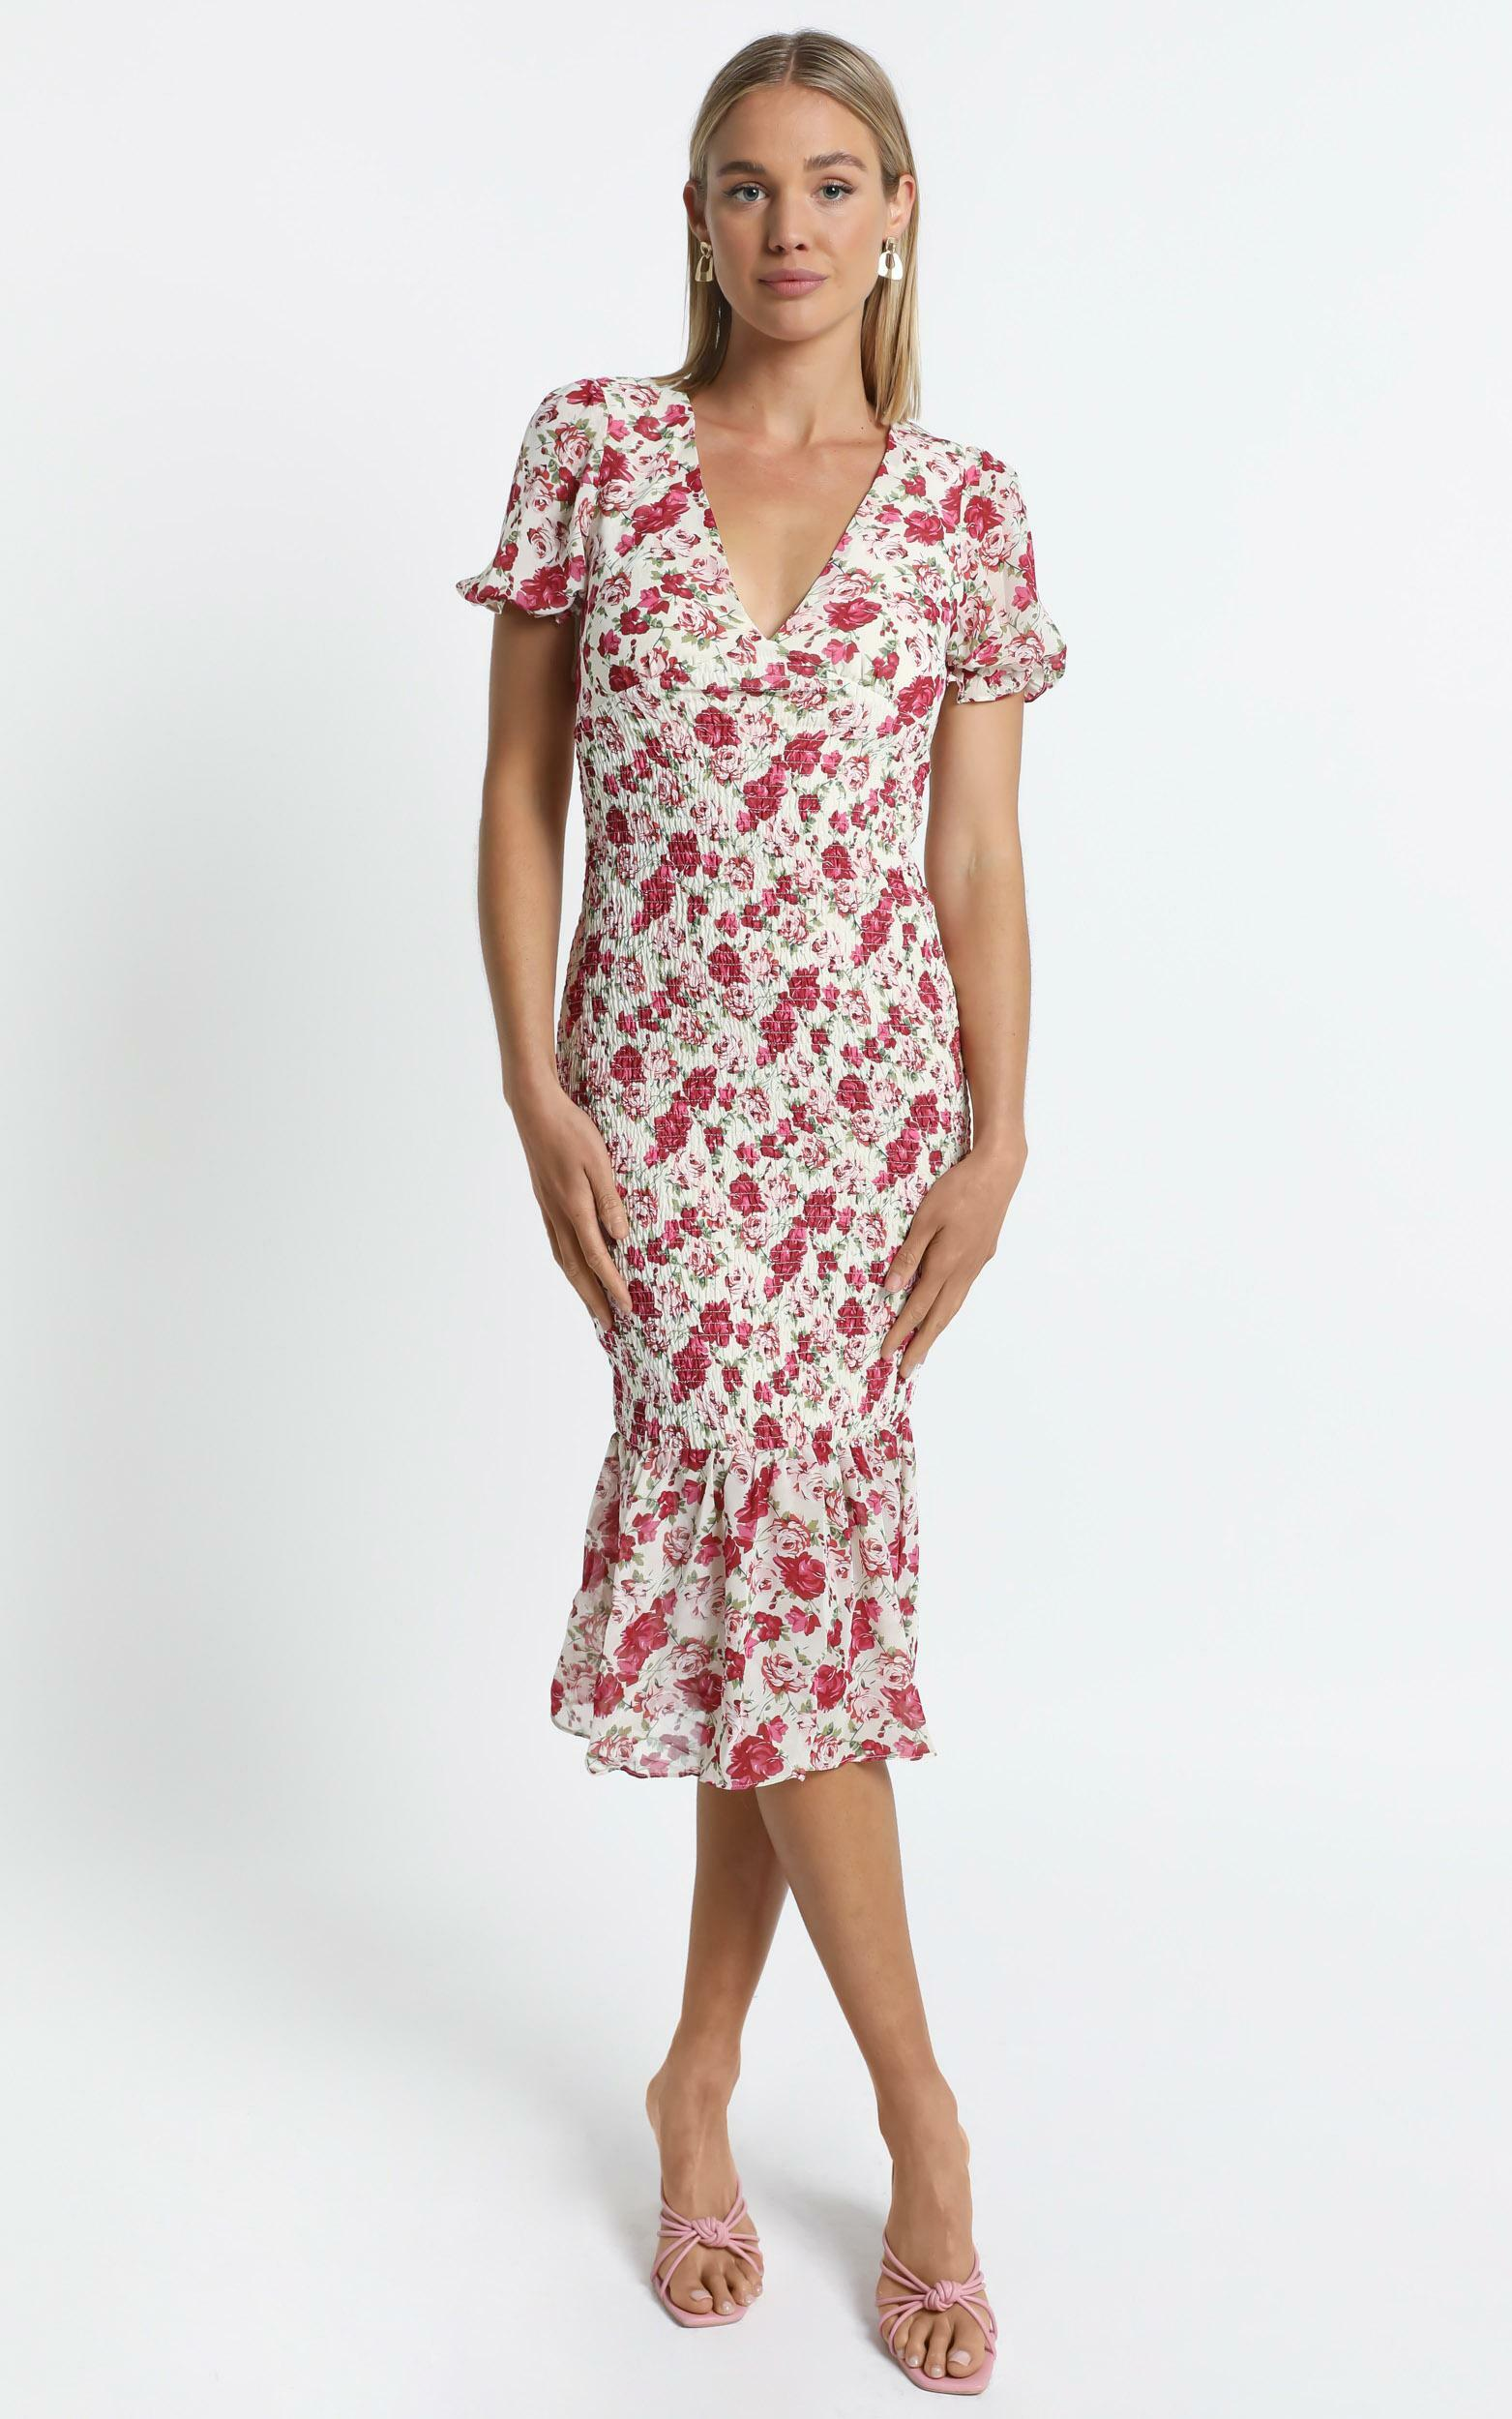 Canterbury Dress in Pink Floral - 6 (XS), Pink, hi-res image number null